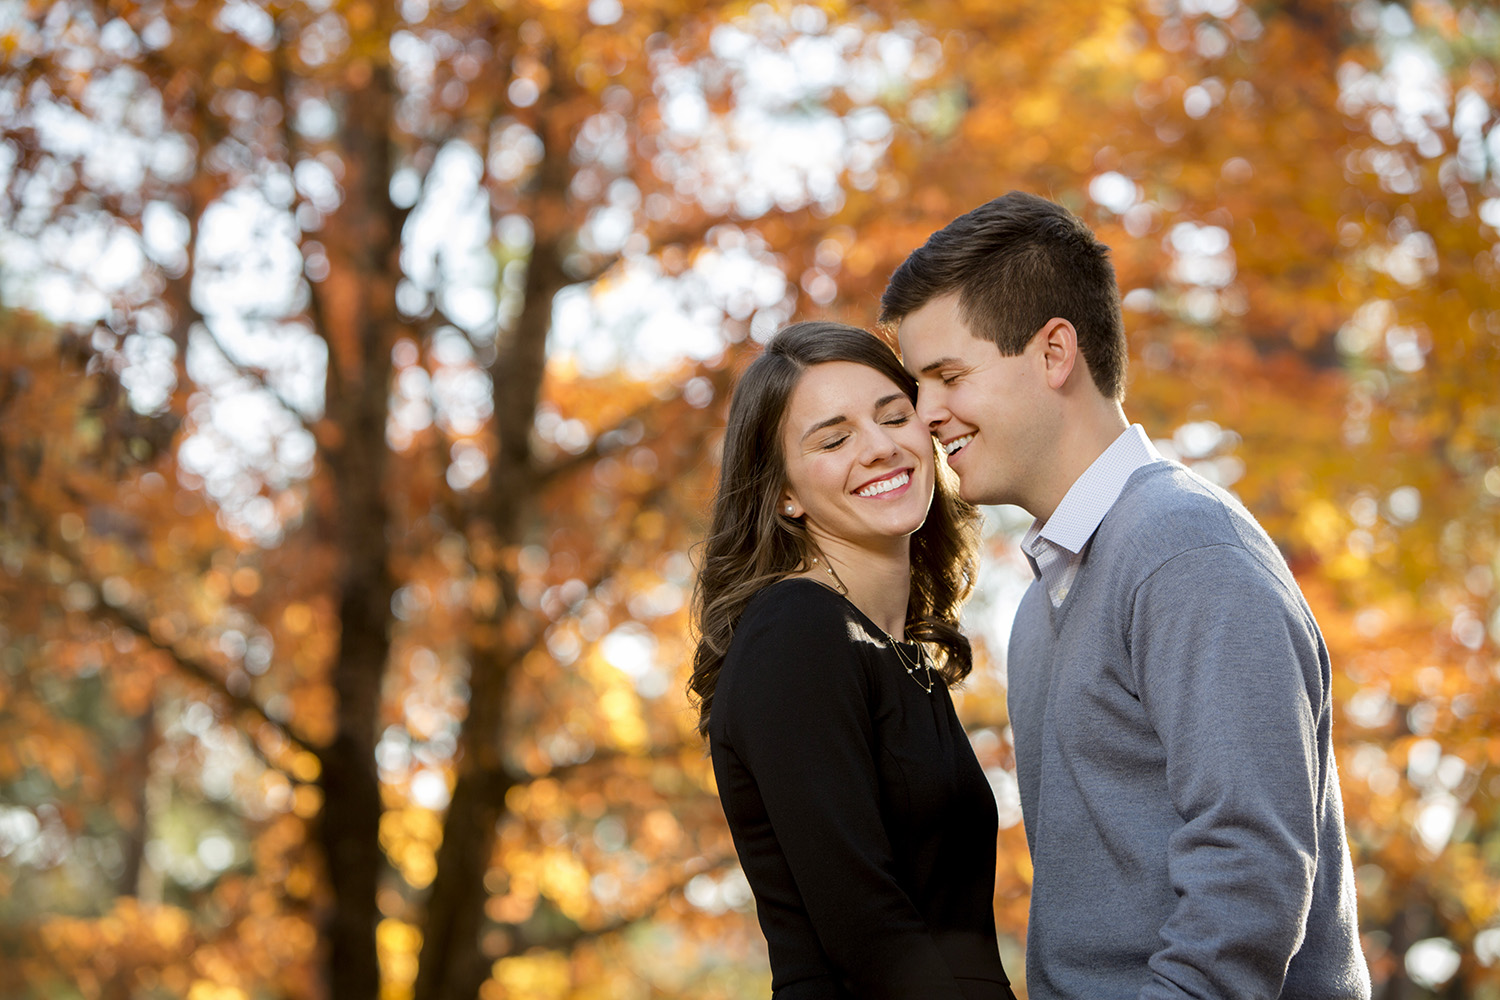 Melanie-Mike-Engagements-0021.JPG